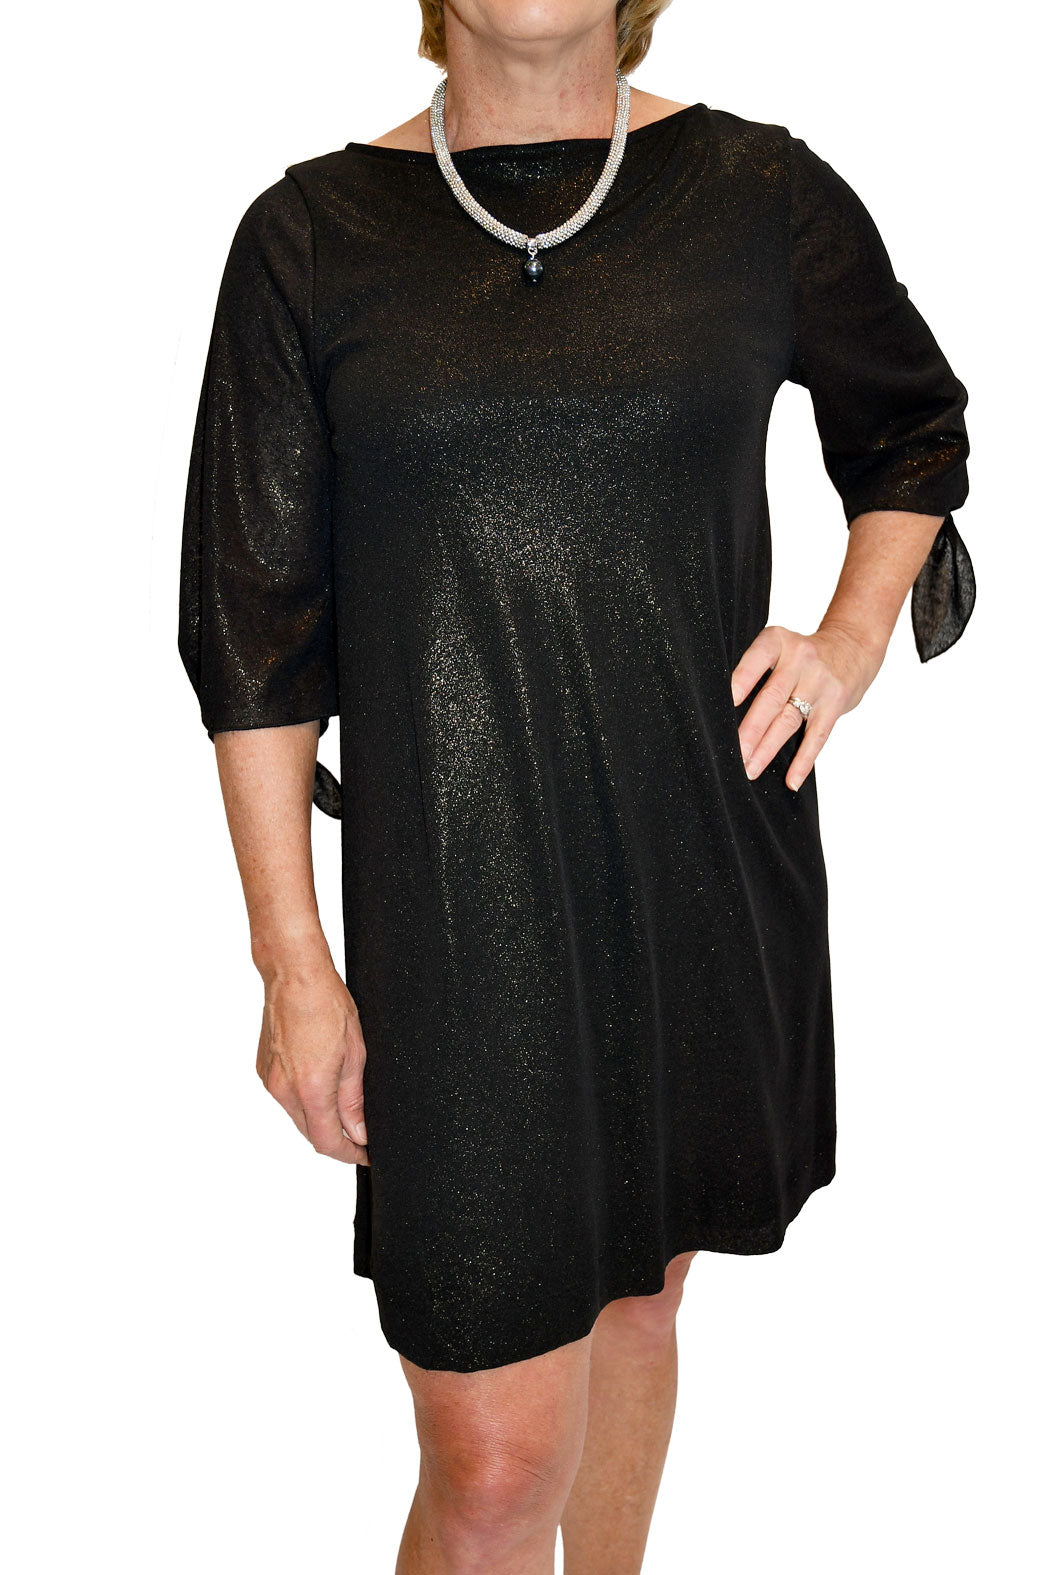 Front view of shimmer shift dress with tie sleeves from Nally and Millie.